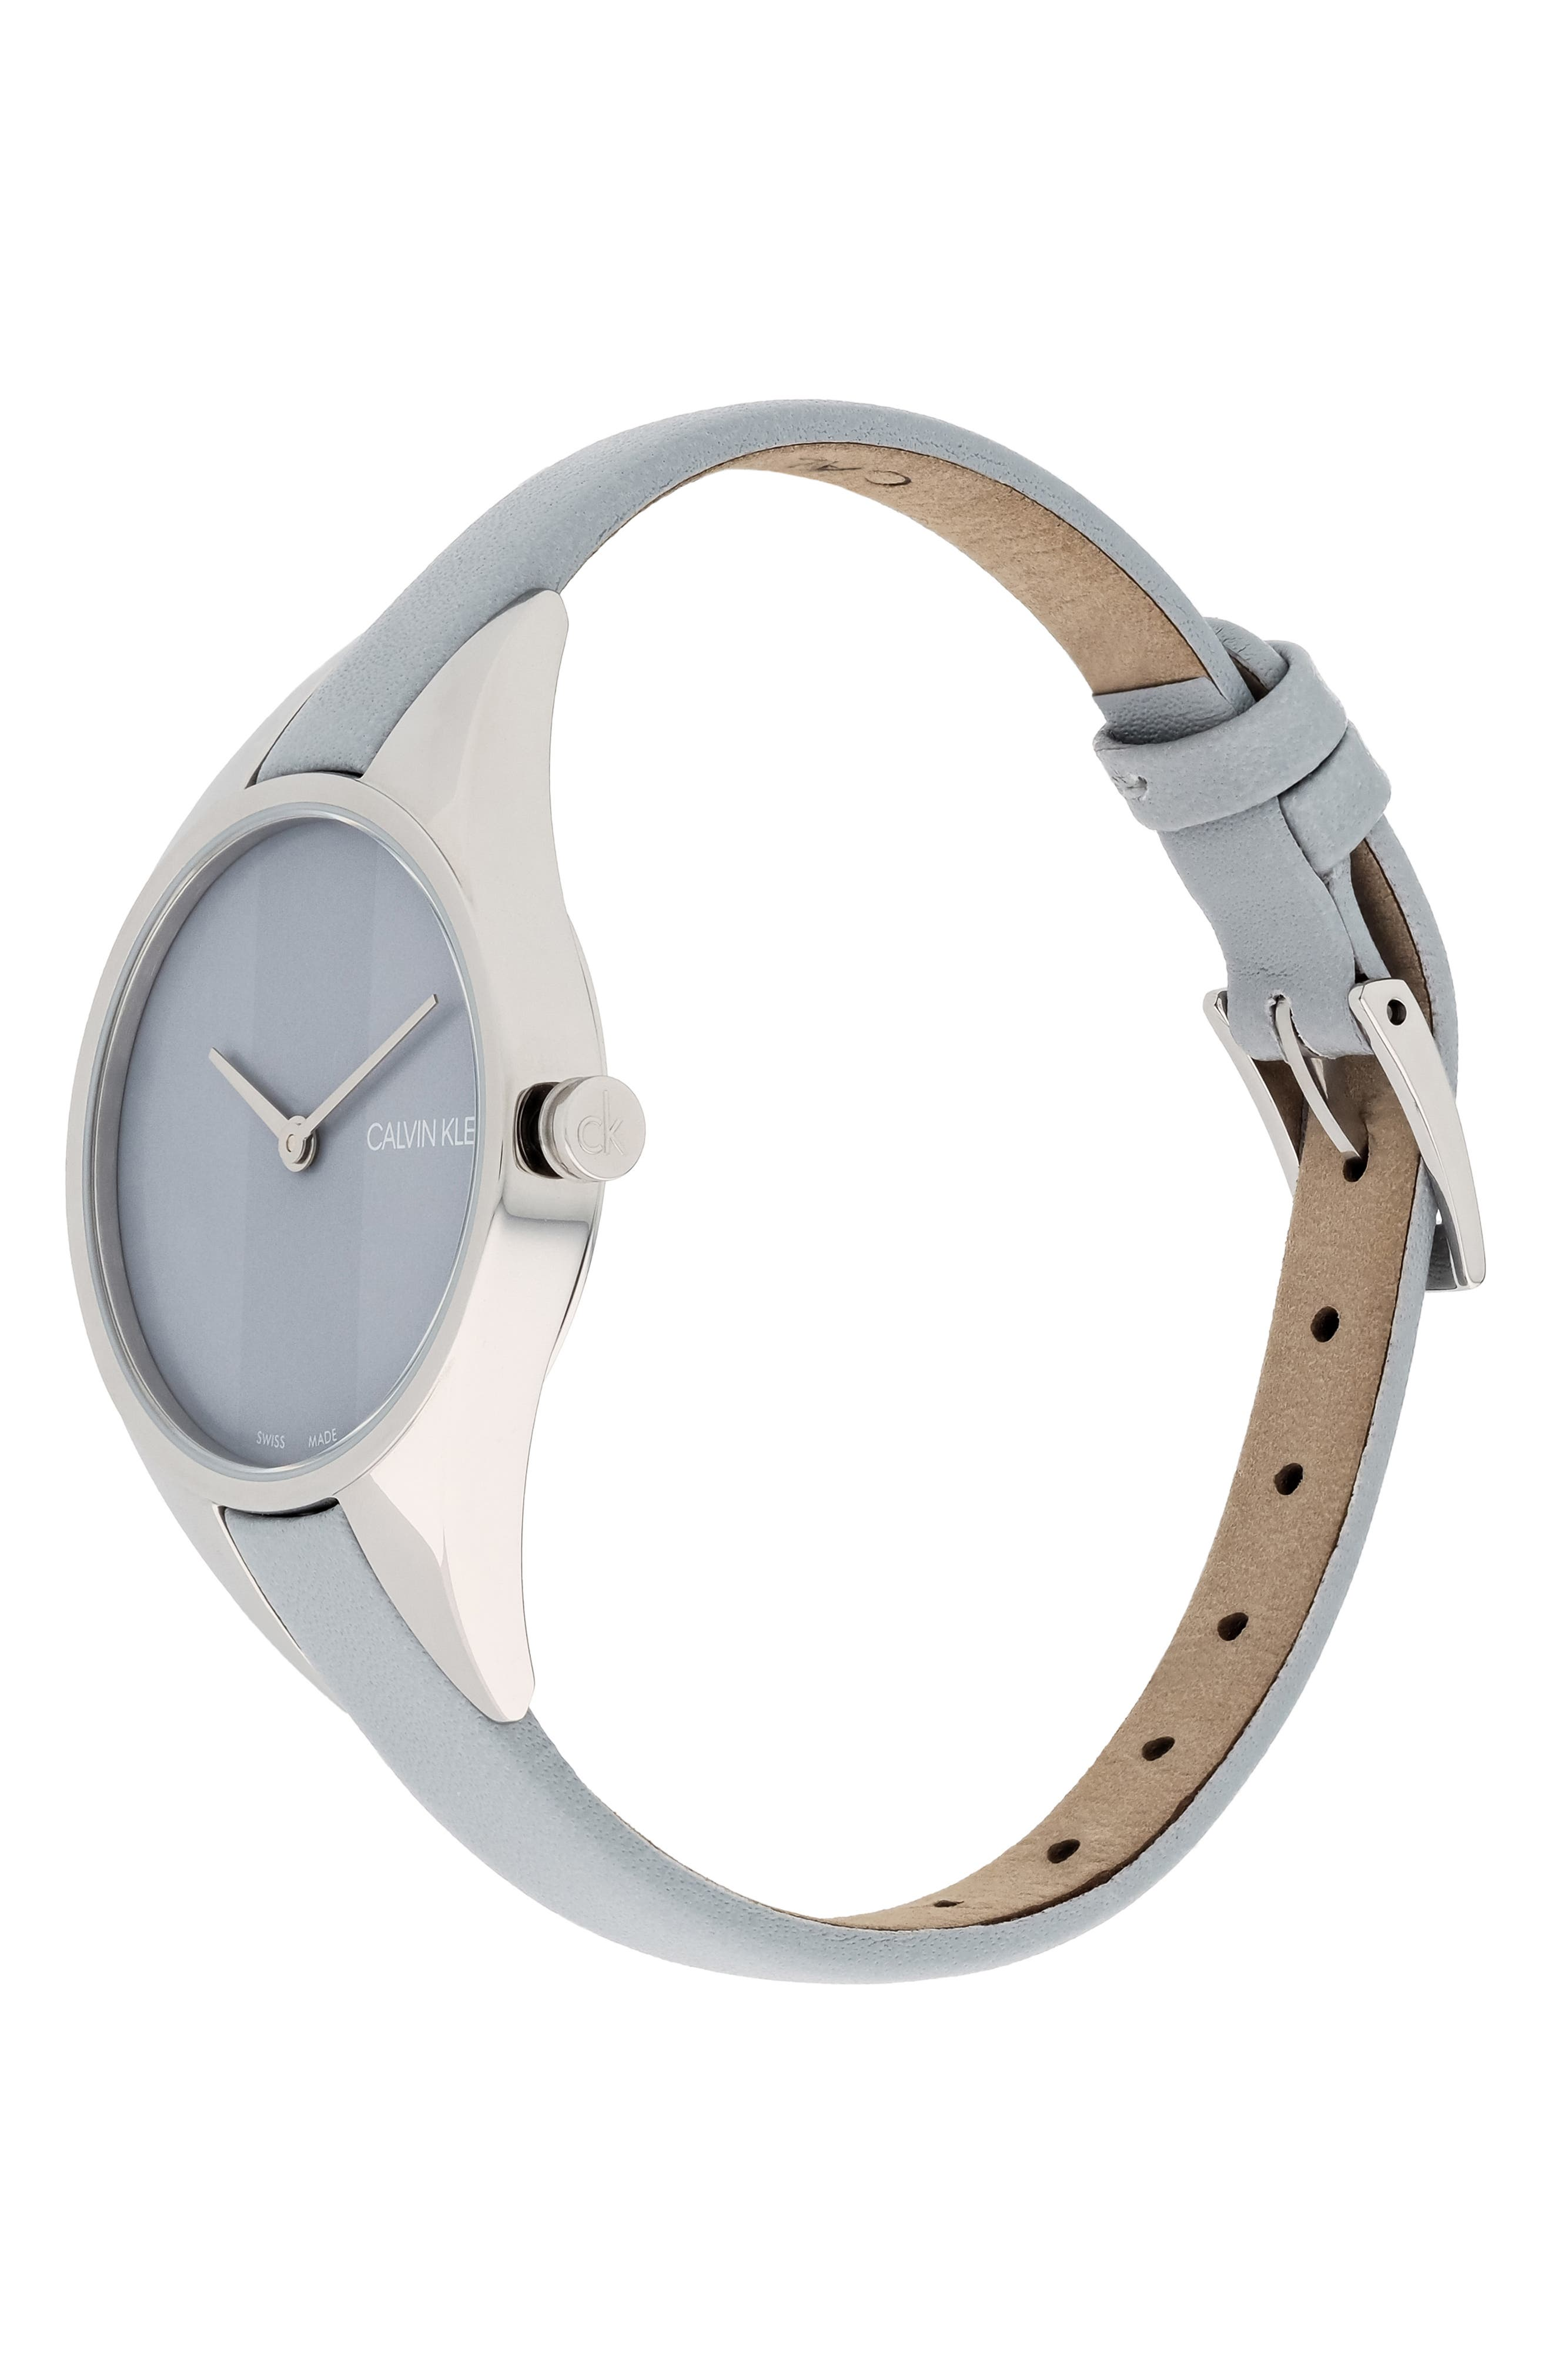 CALVIN KLEIN, Achieve Rebel Leather Band Watch, 29mm, Alternate thumbnail 4, color, GREY/ SILVER